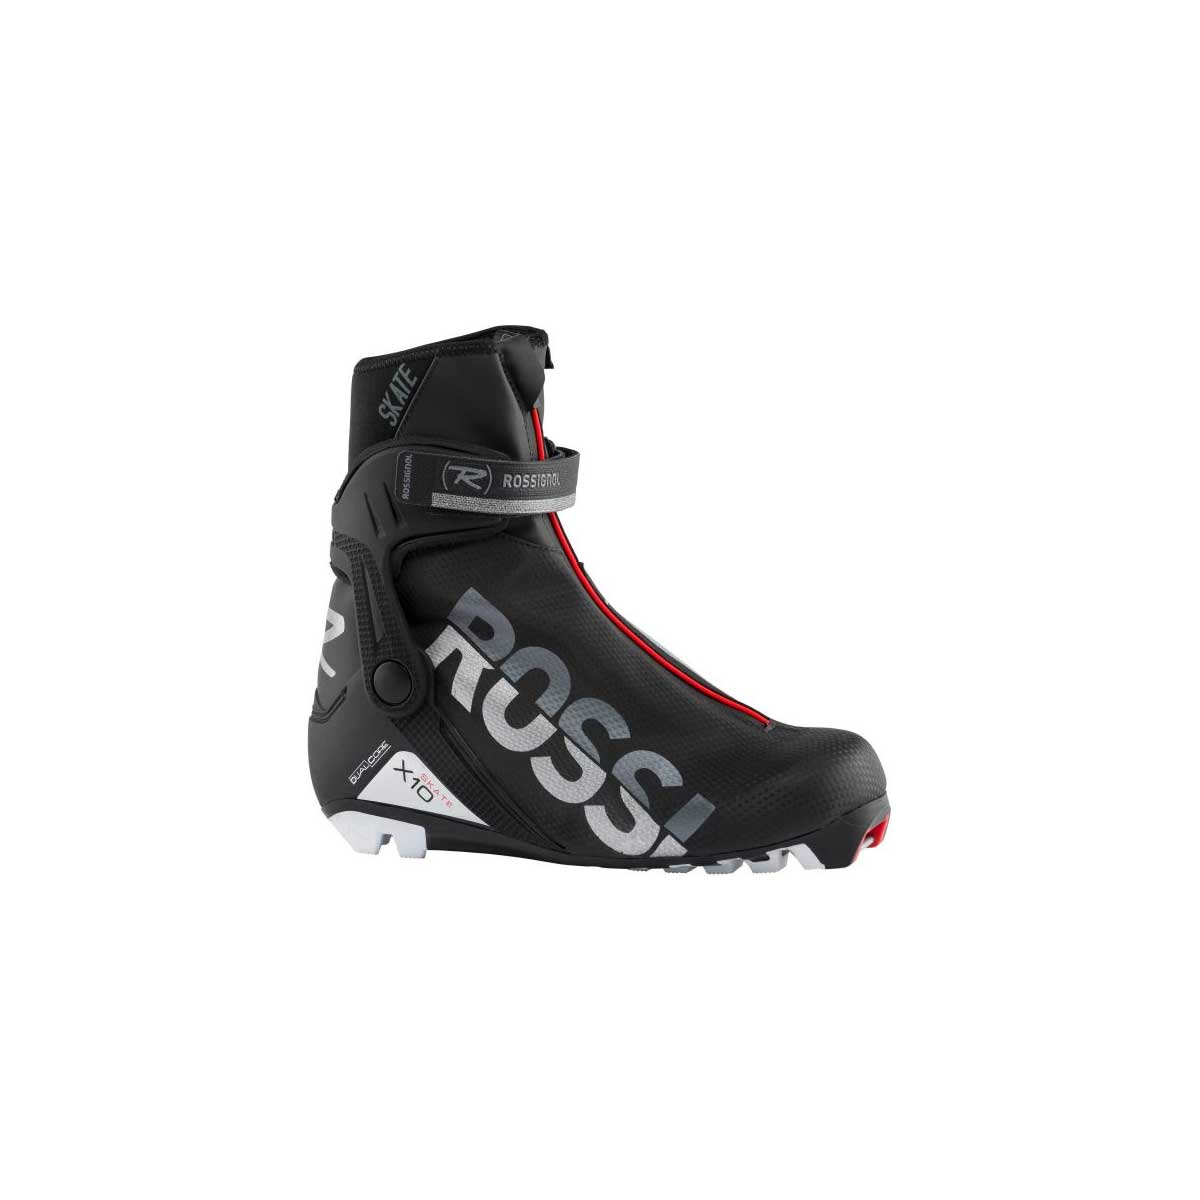 Rossignol Women's X-10 Skate Boot in Black and Red